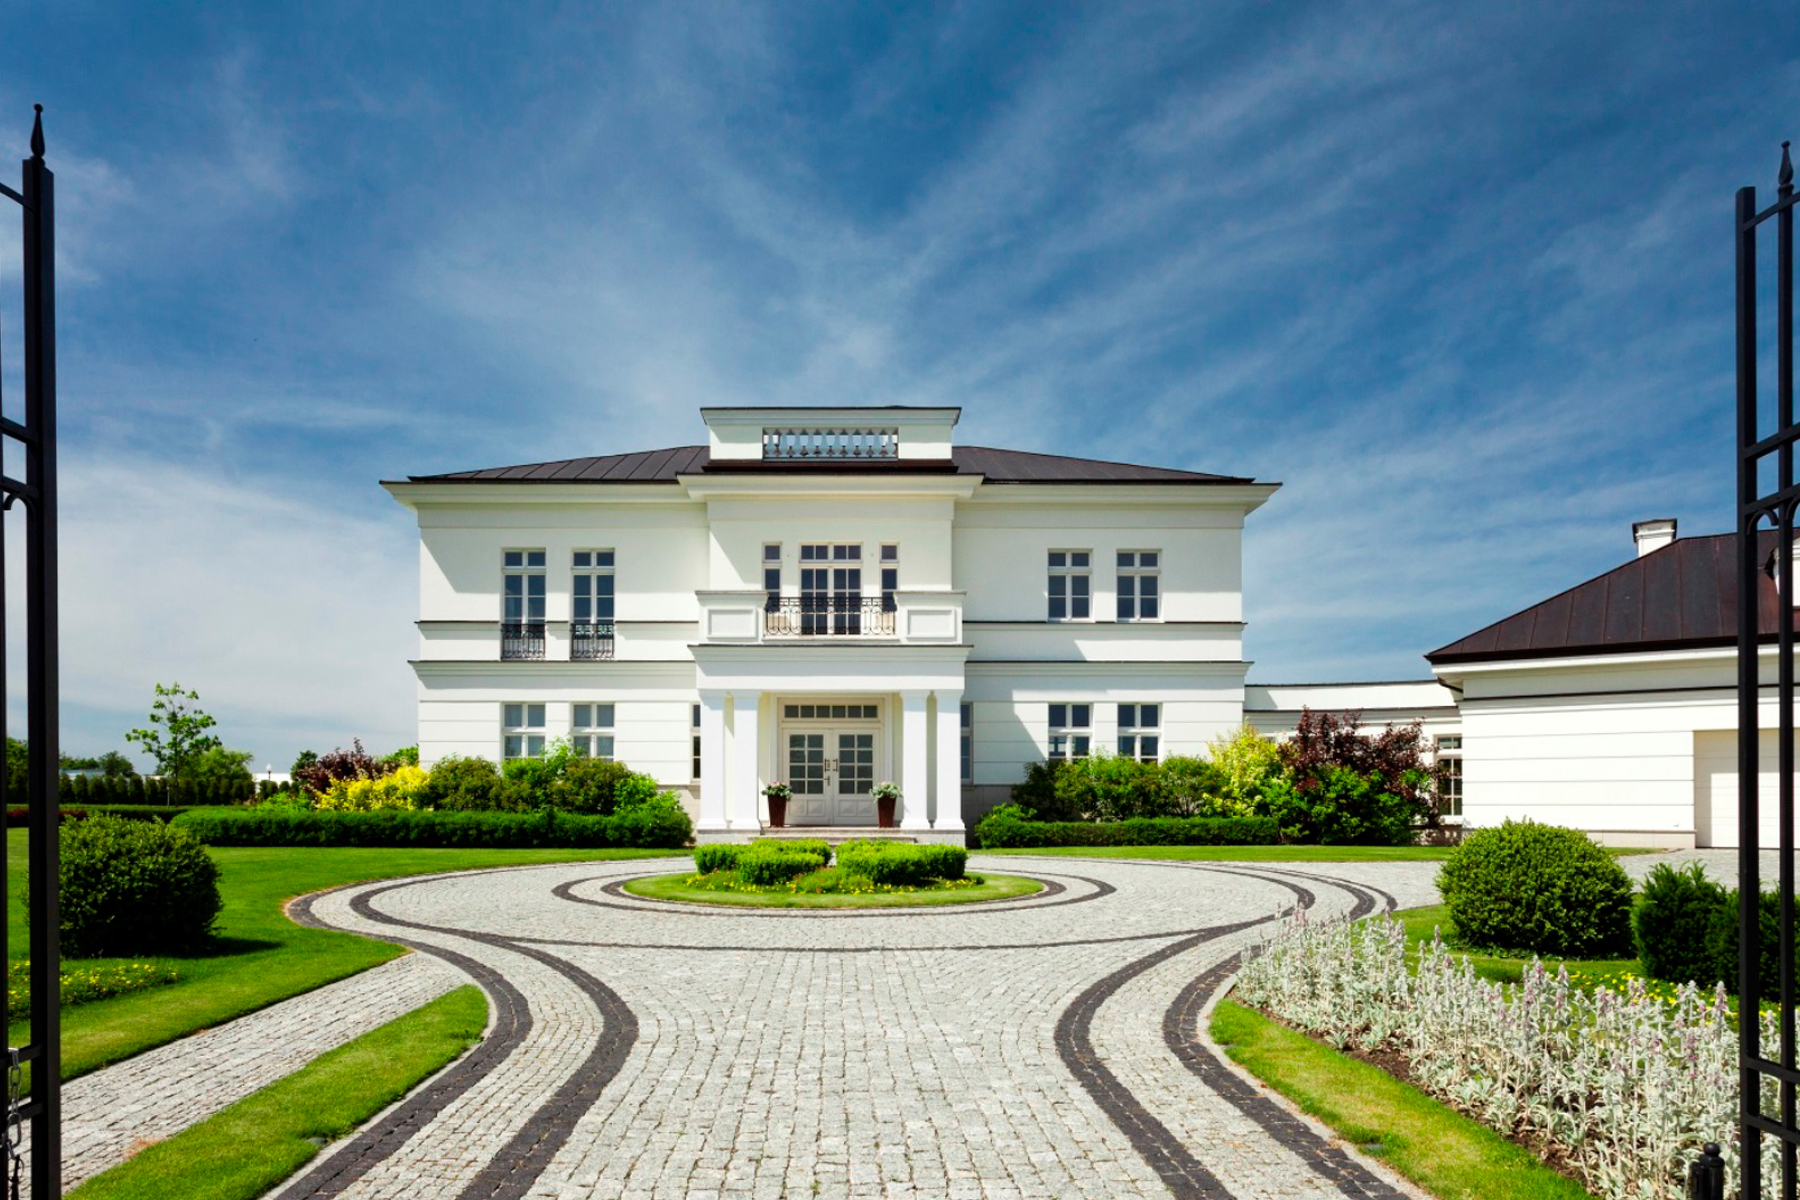 Single Family Home for Sale at Gdynia - Residence Il Sonore Gdansk, Pomeranian, Poland